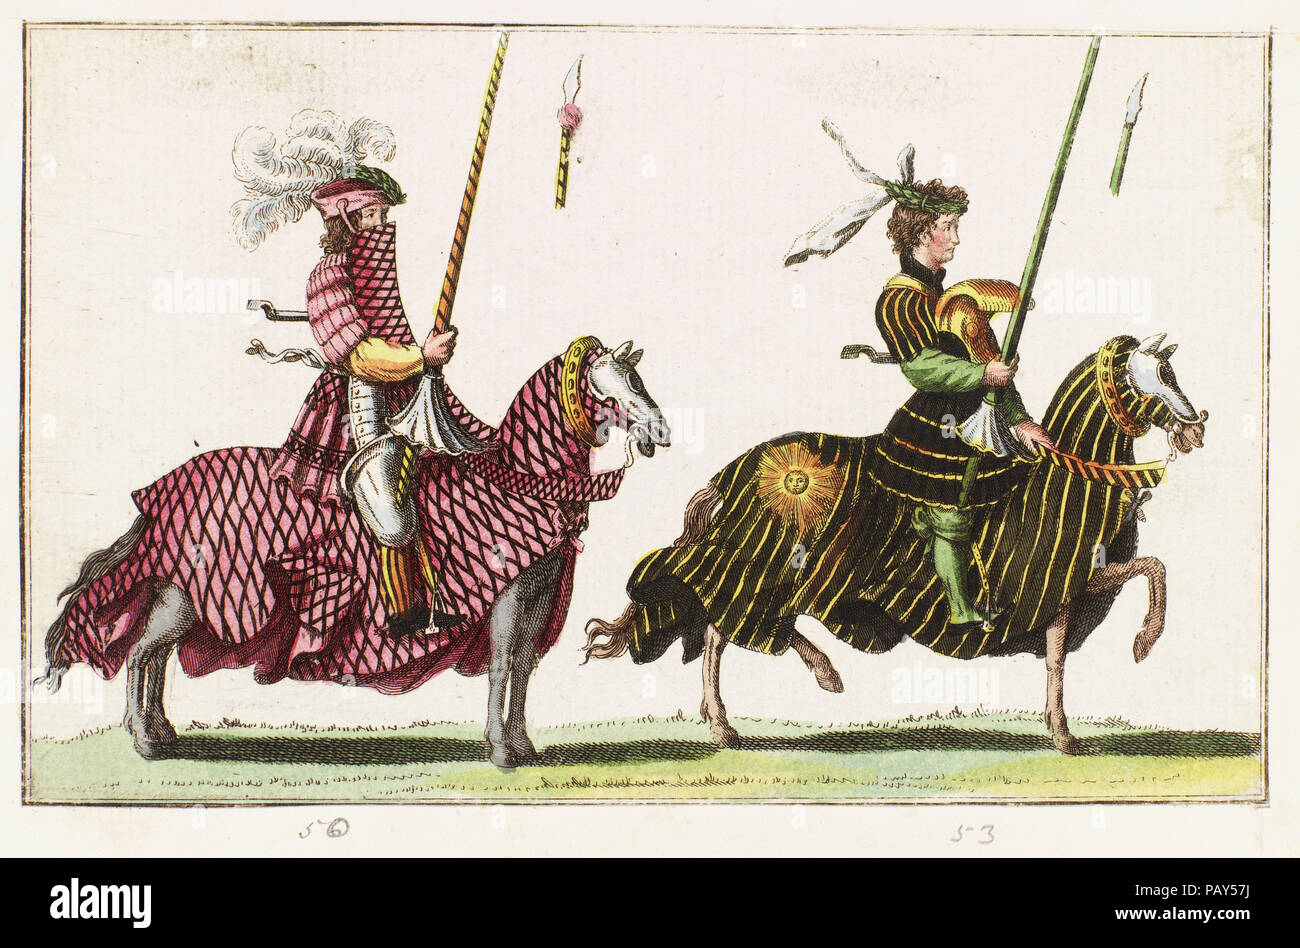 Coloured print showing two men at arms in combat - Stock Image